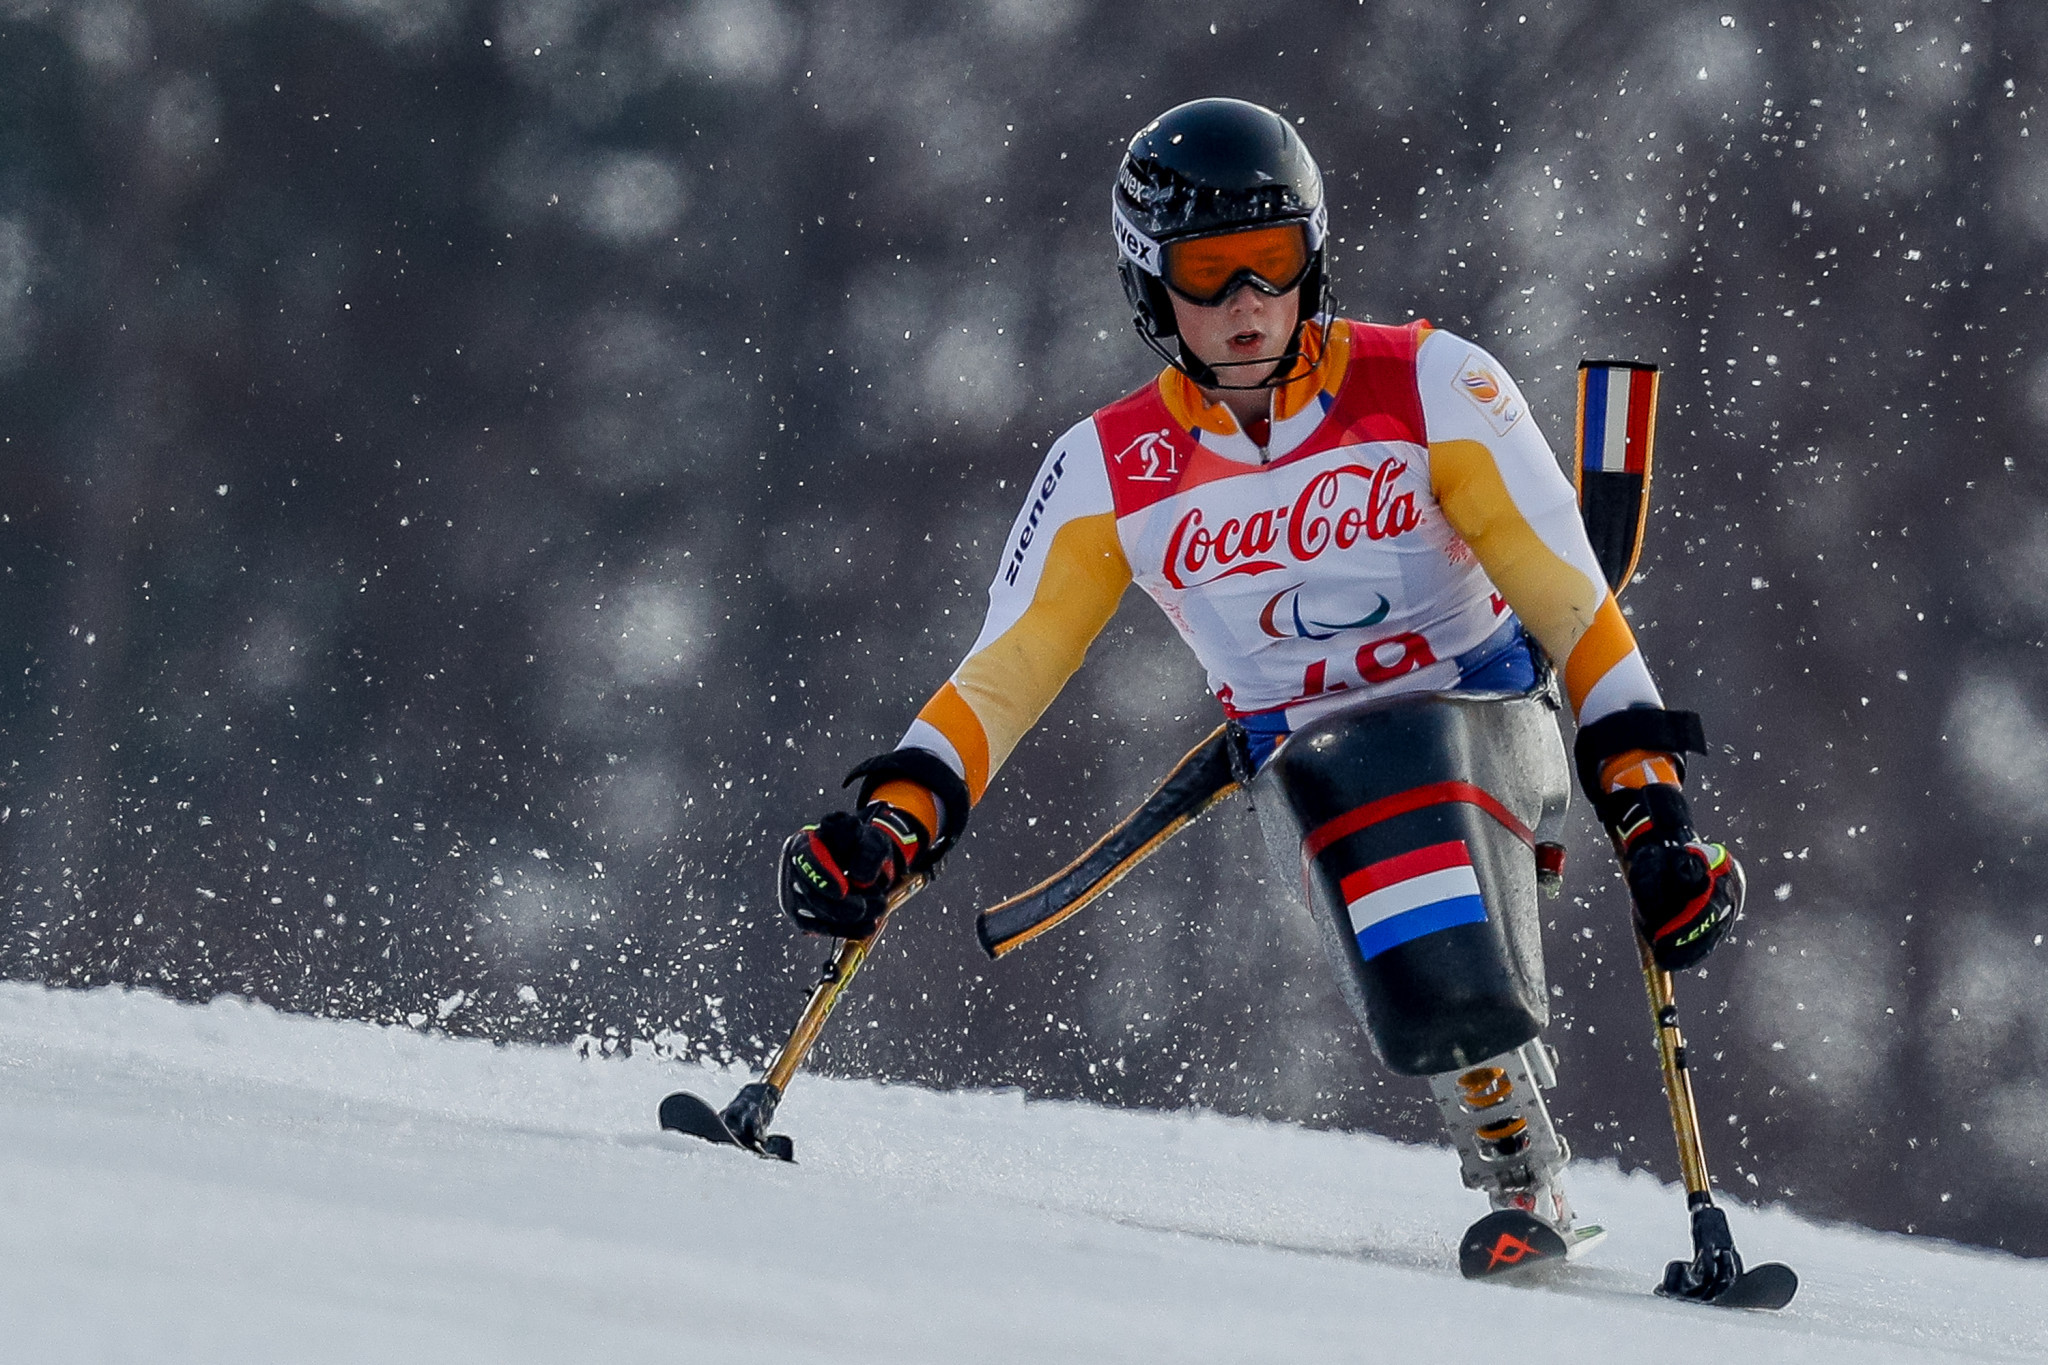 The Netherlands' Jeroen Kampschreur defended his world title in the men's slalom sitting event ©Getty Images